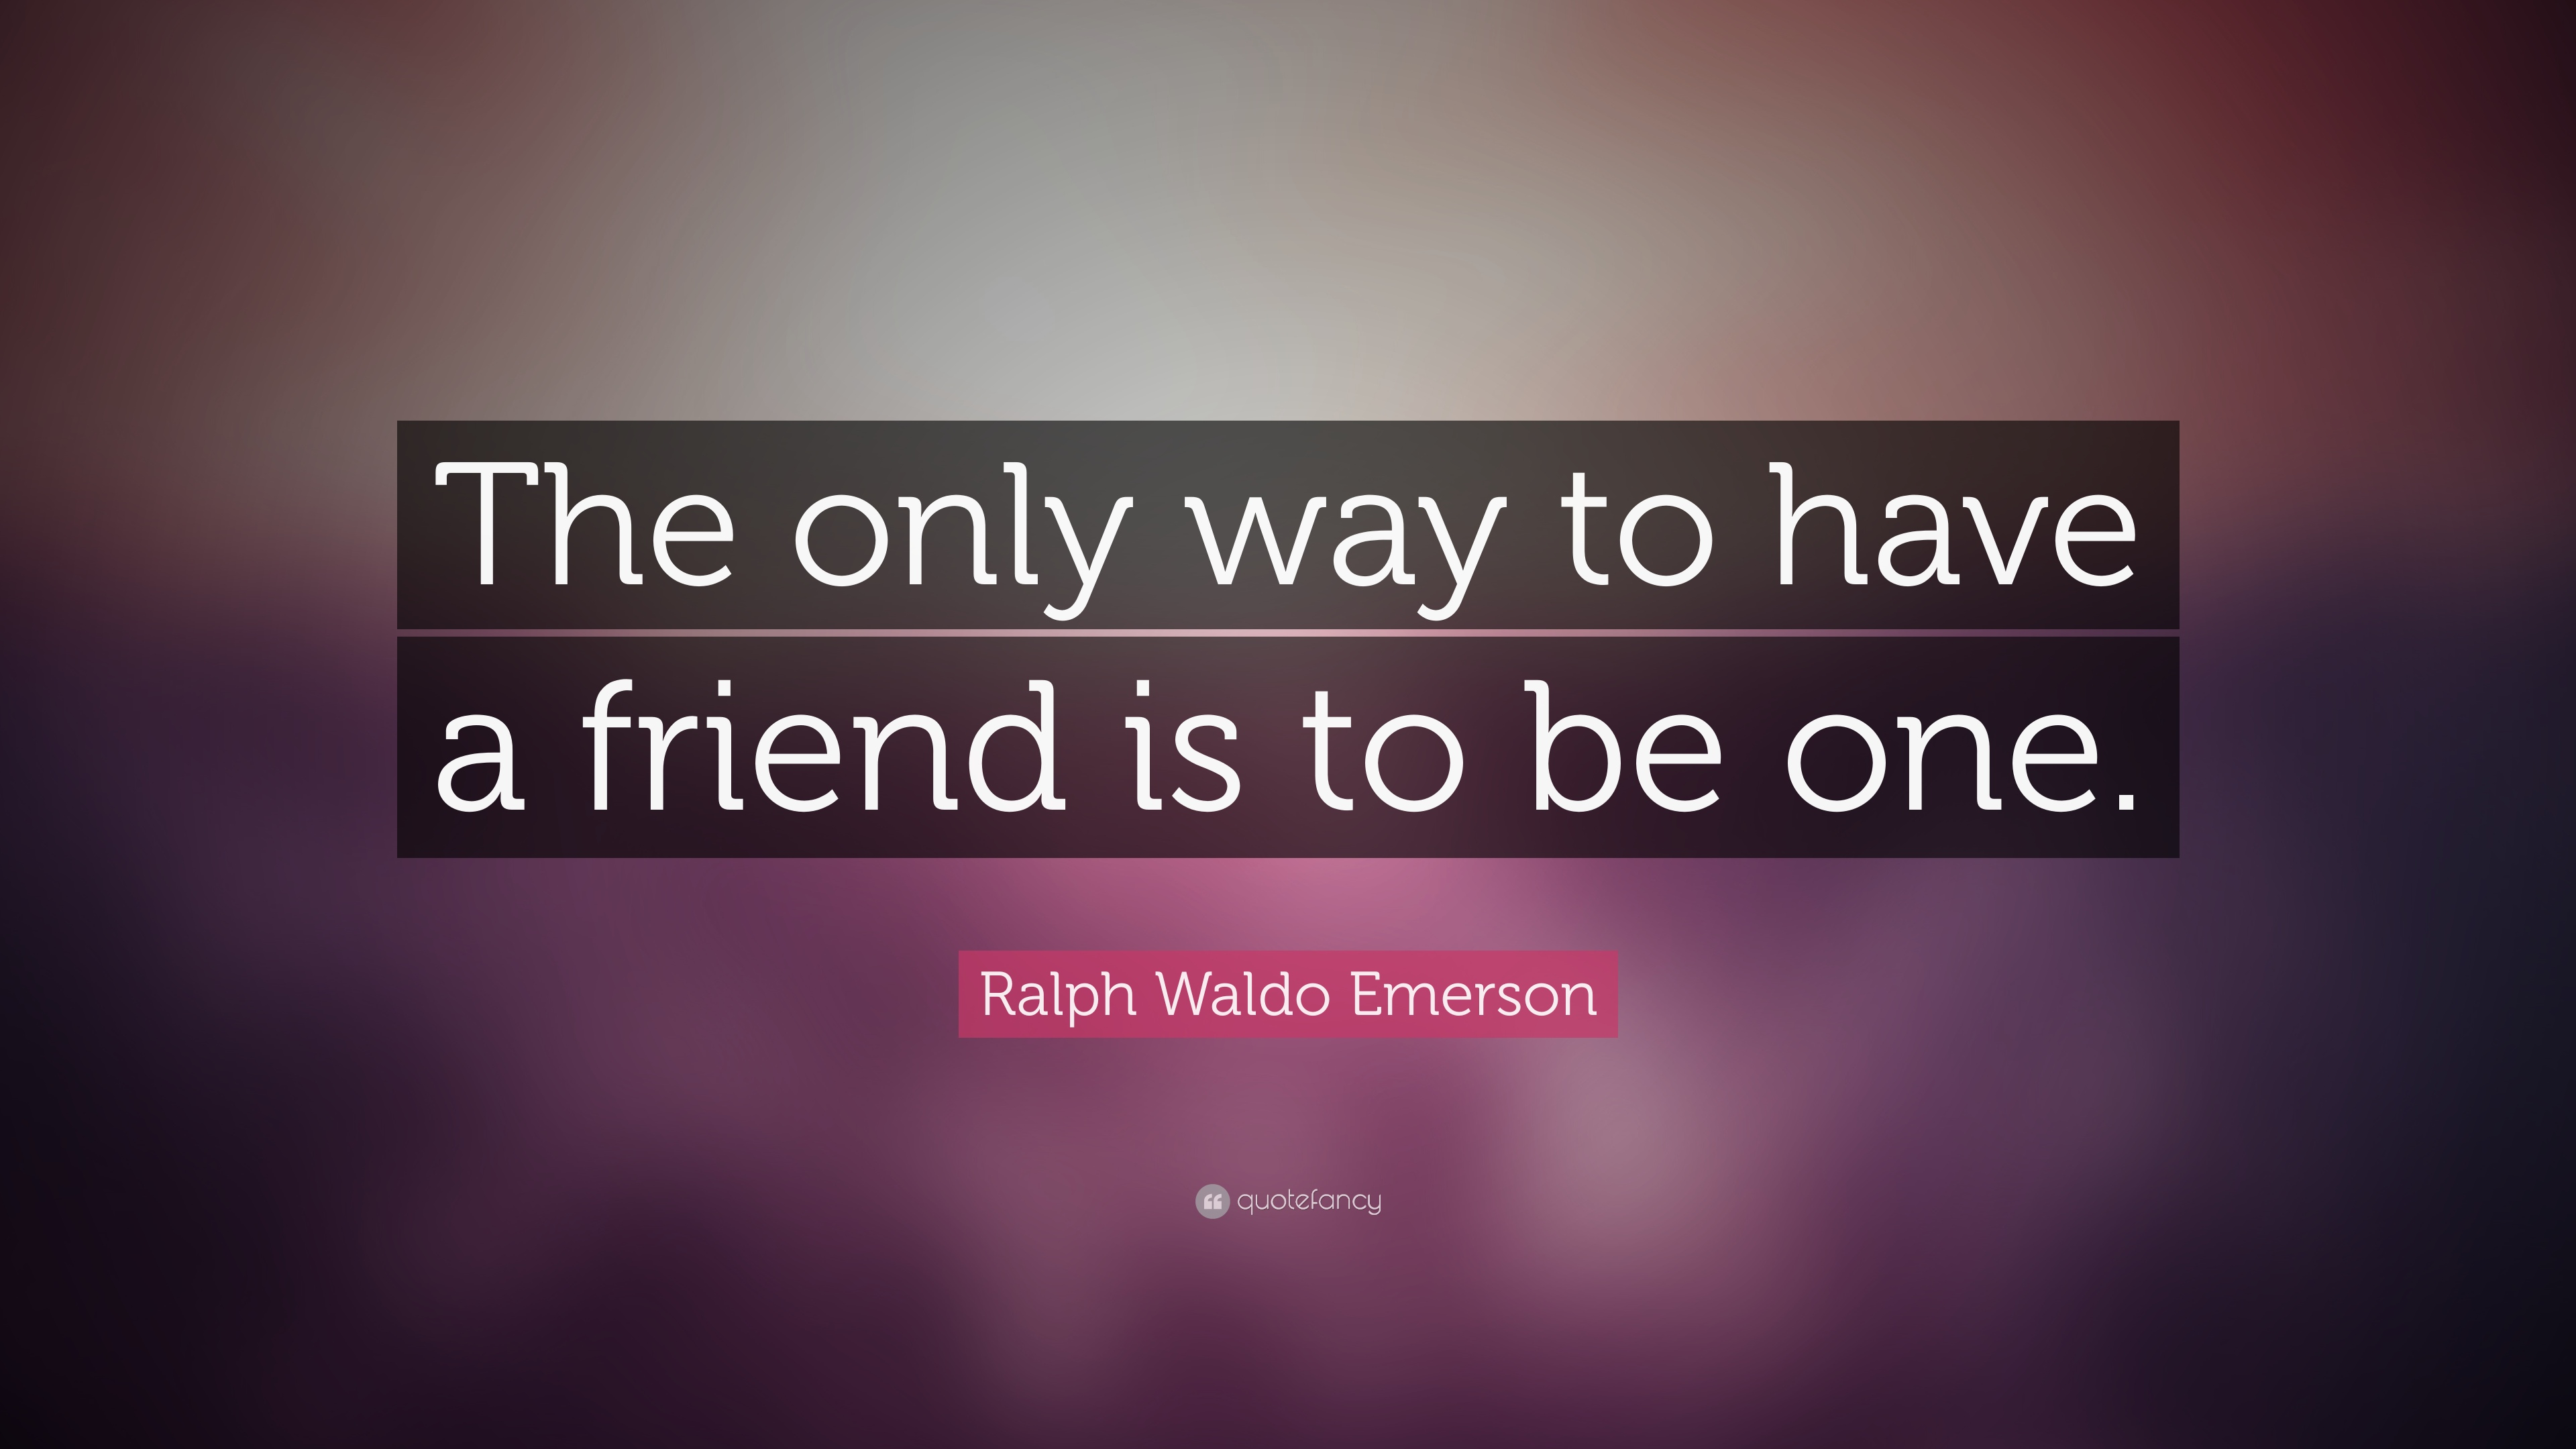 Great Quotes About Friendship Friendship Quotes 21 Wallpapers  Quotefancy